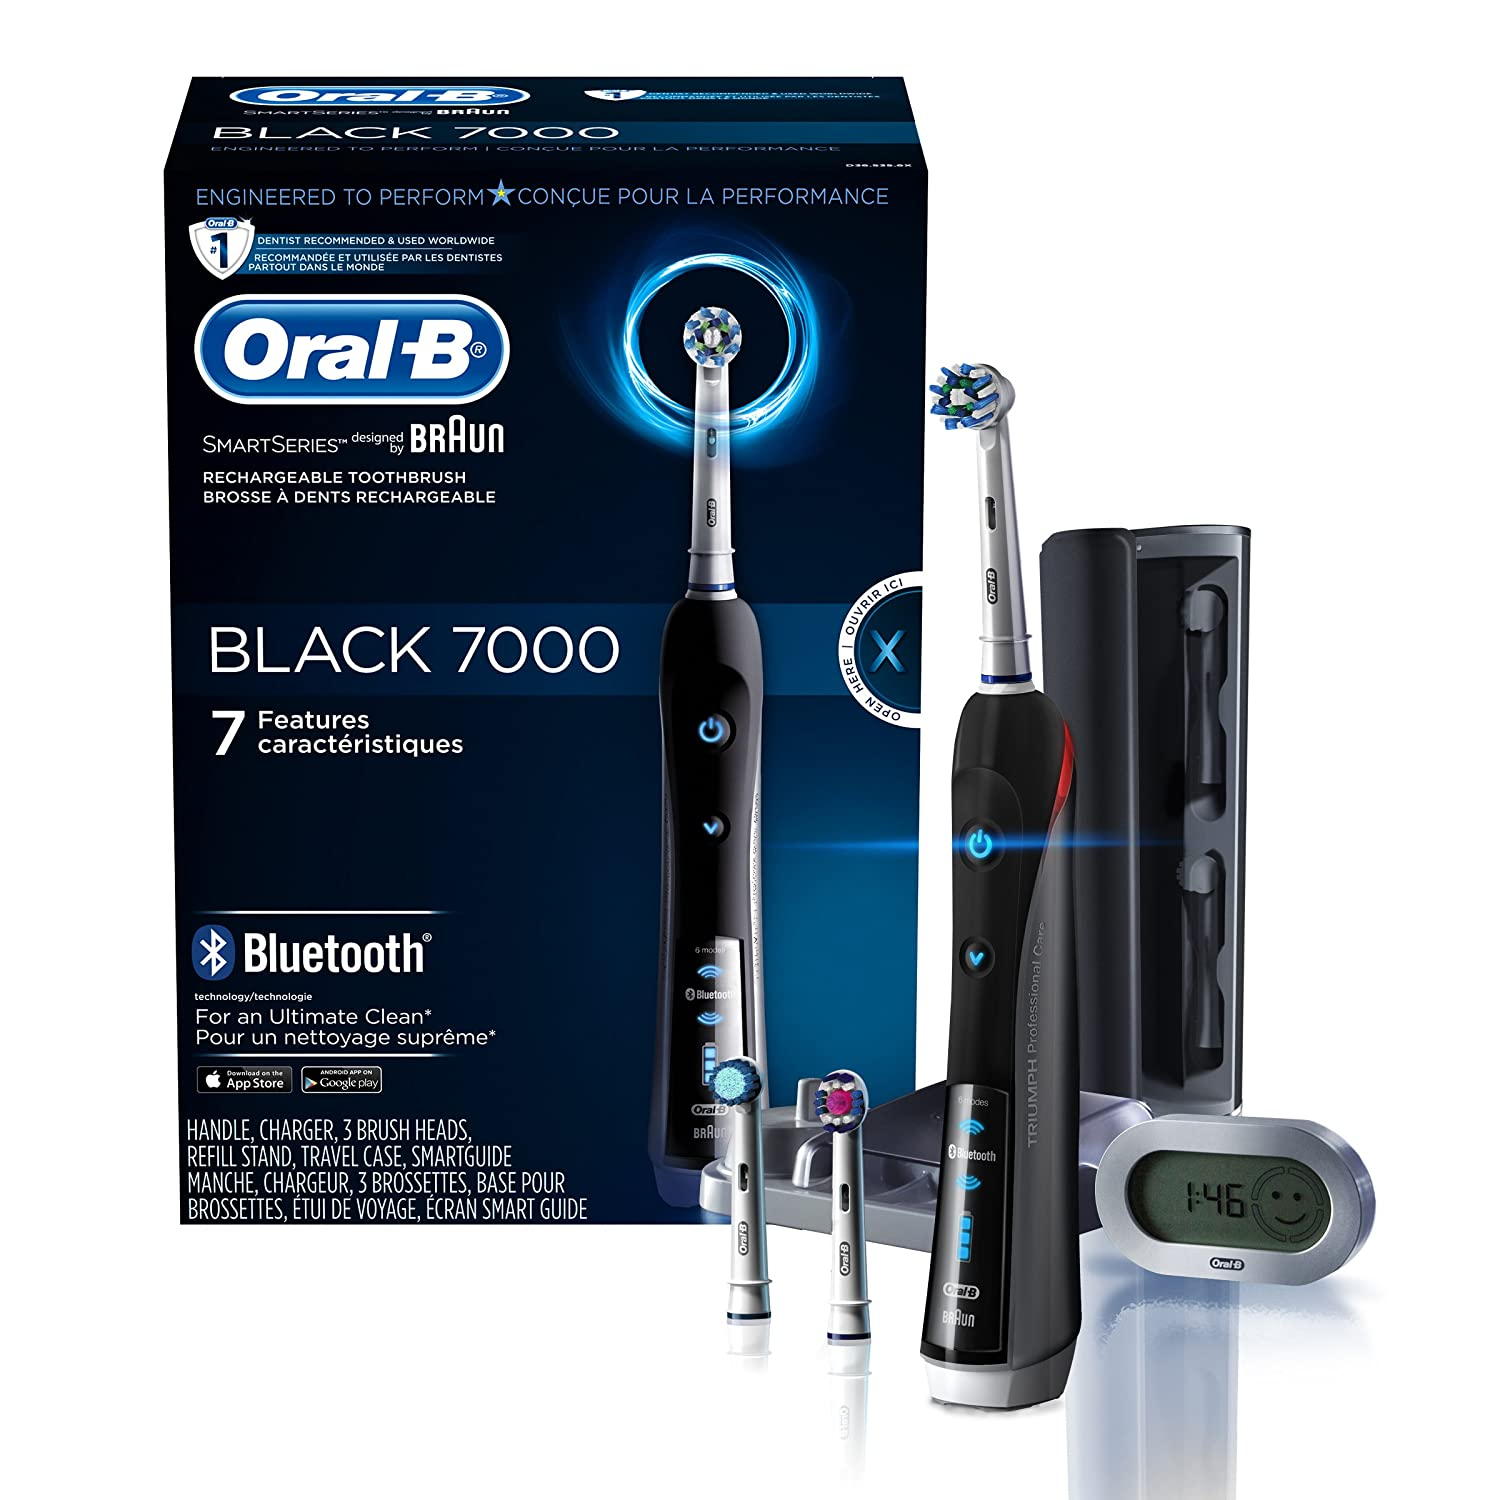 Top 10 Best Electric Toothbrush (2020 Review & Buying Guide) 1